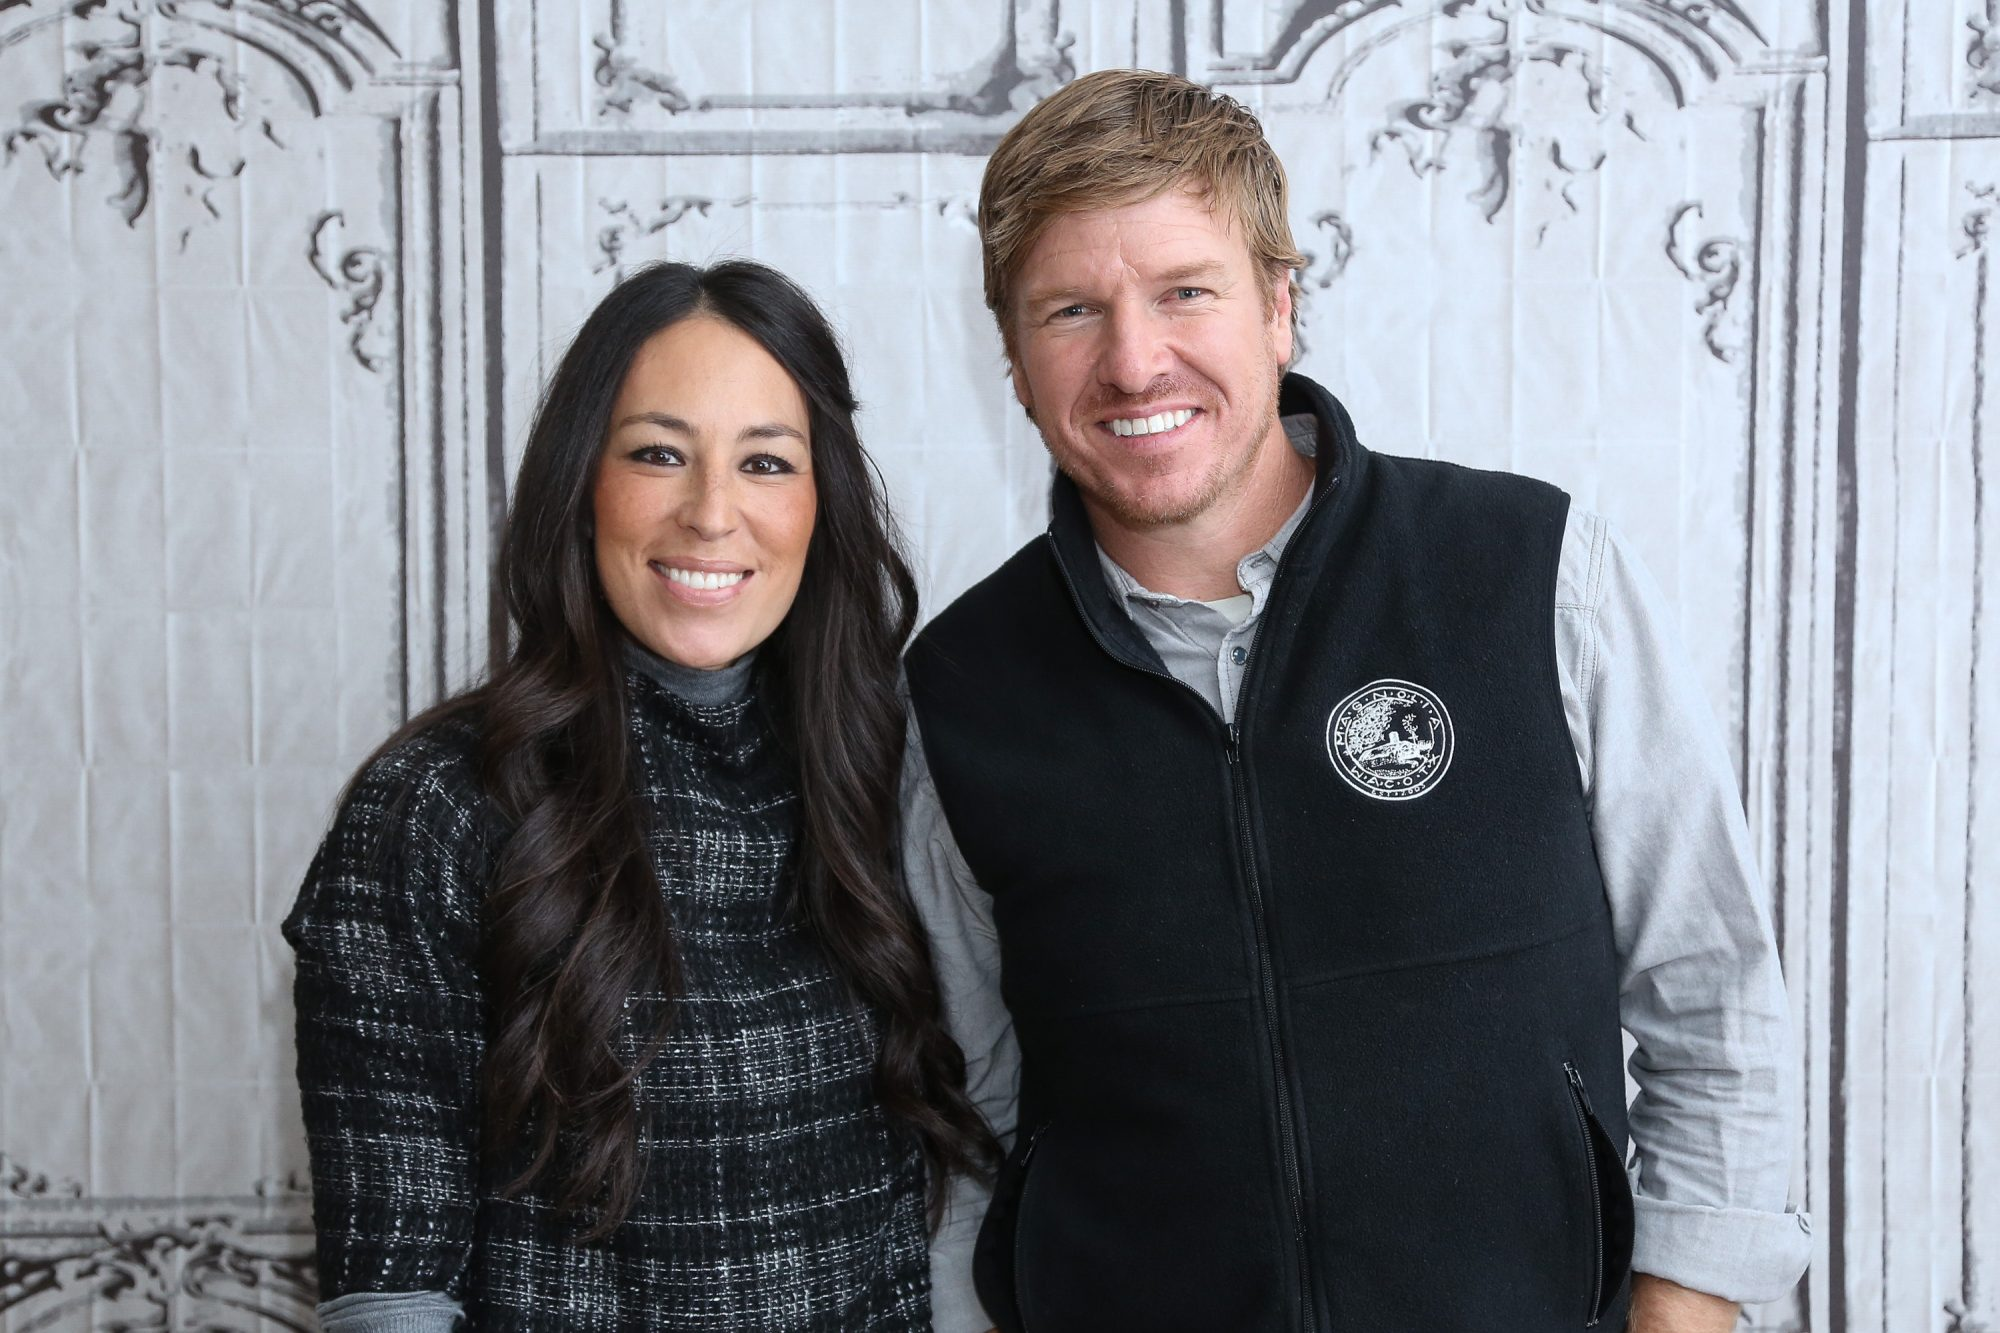 Chip and Joanna Gaines Headshot